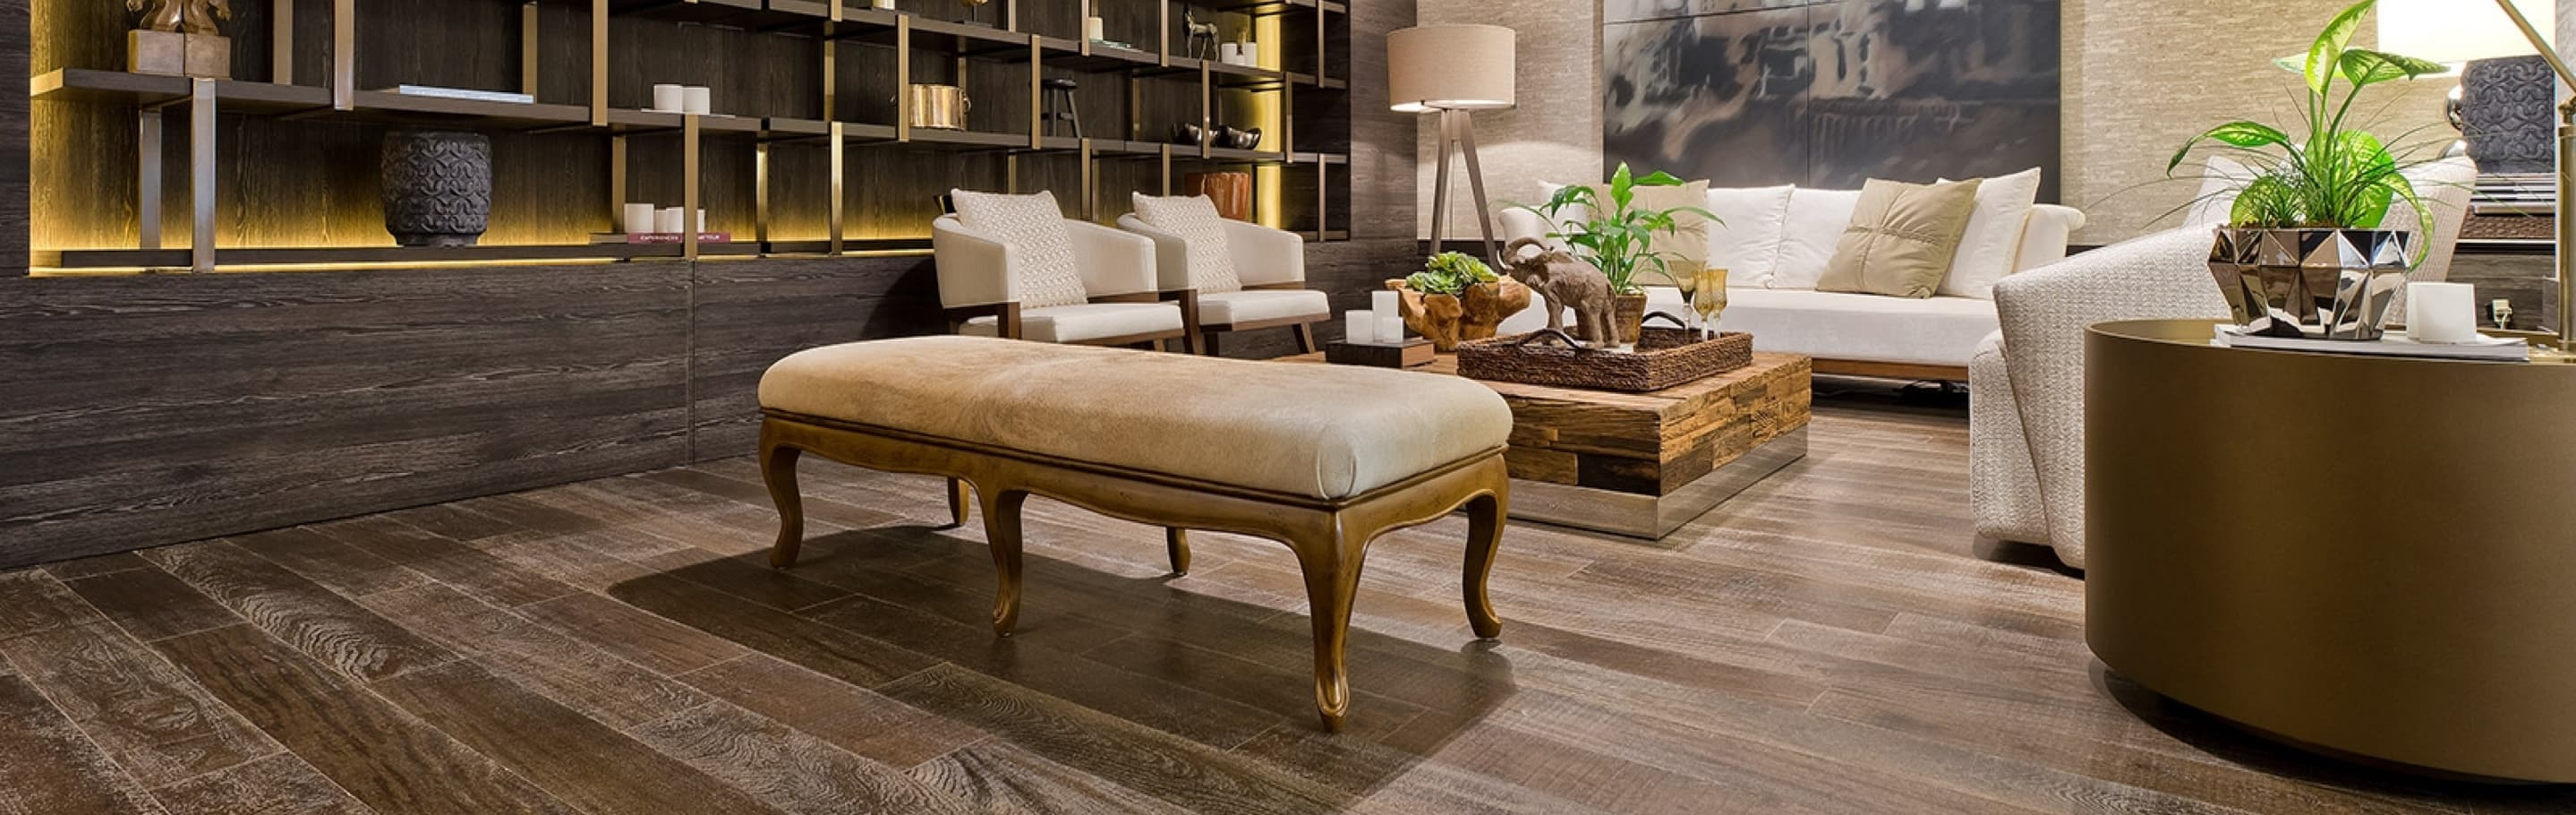 Flooring | South Tampa, FL - Carpet Crafters Rug Co.